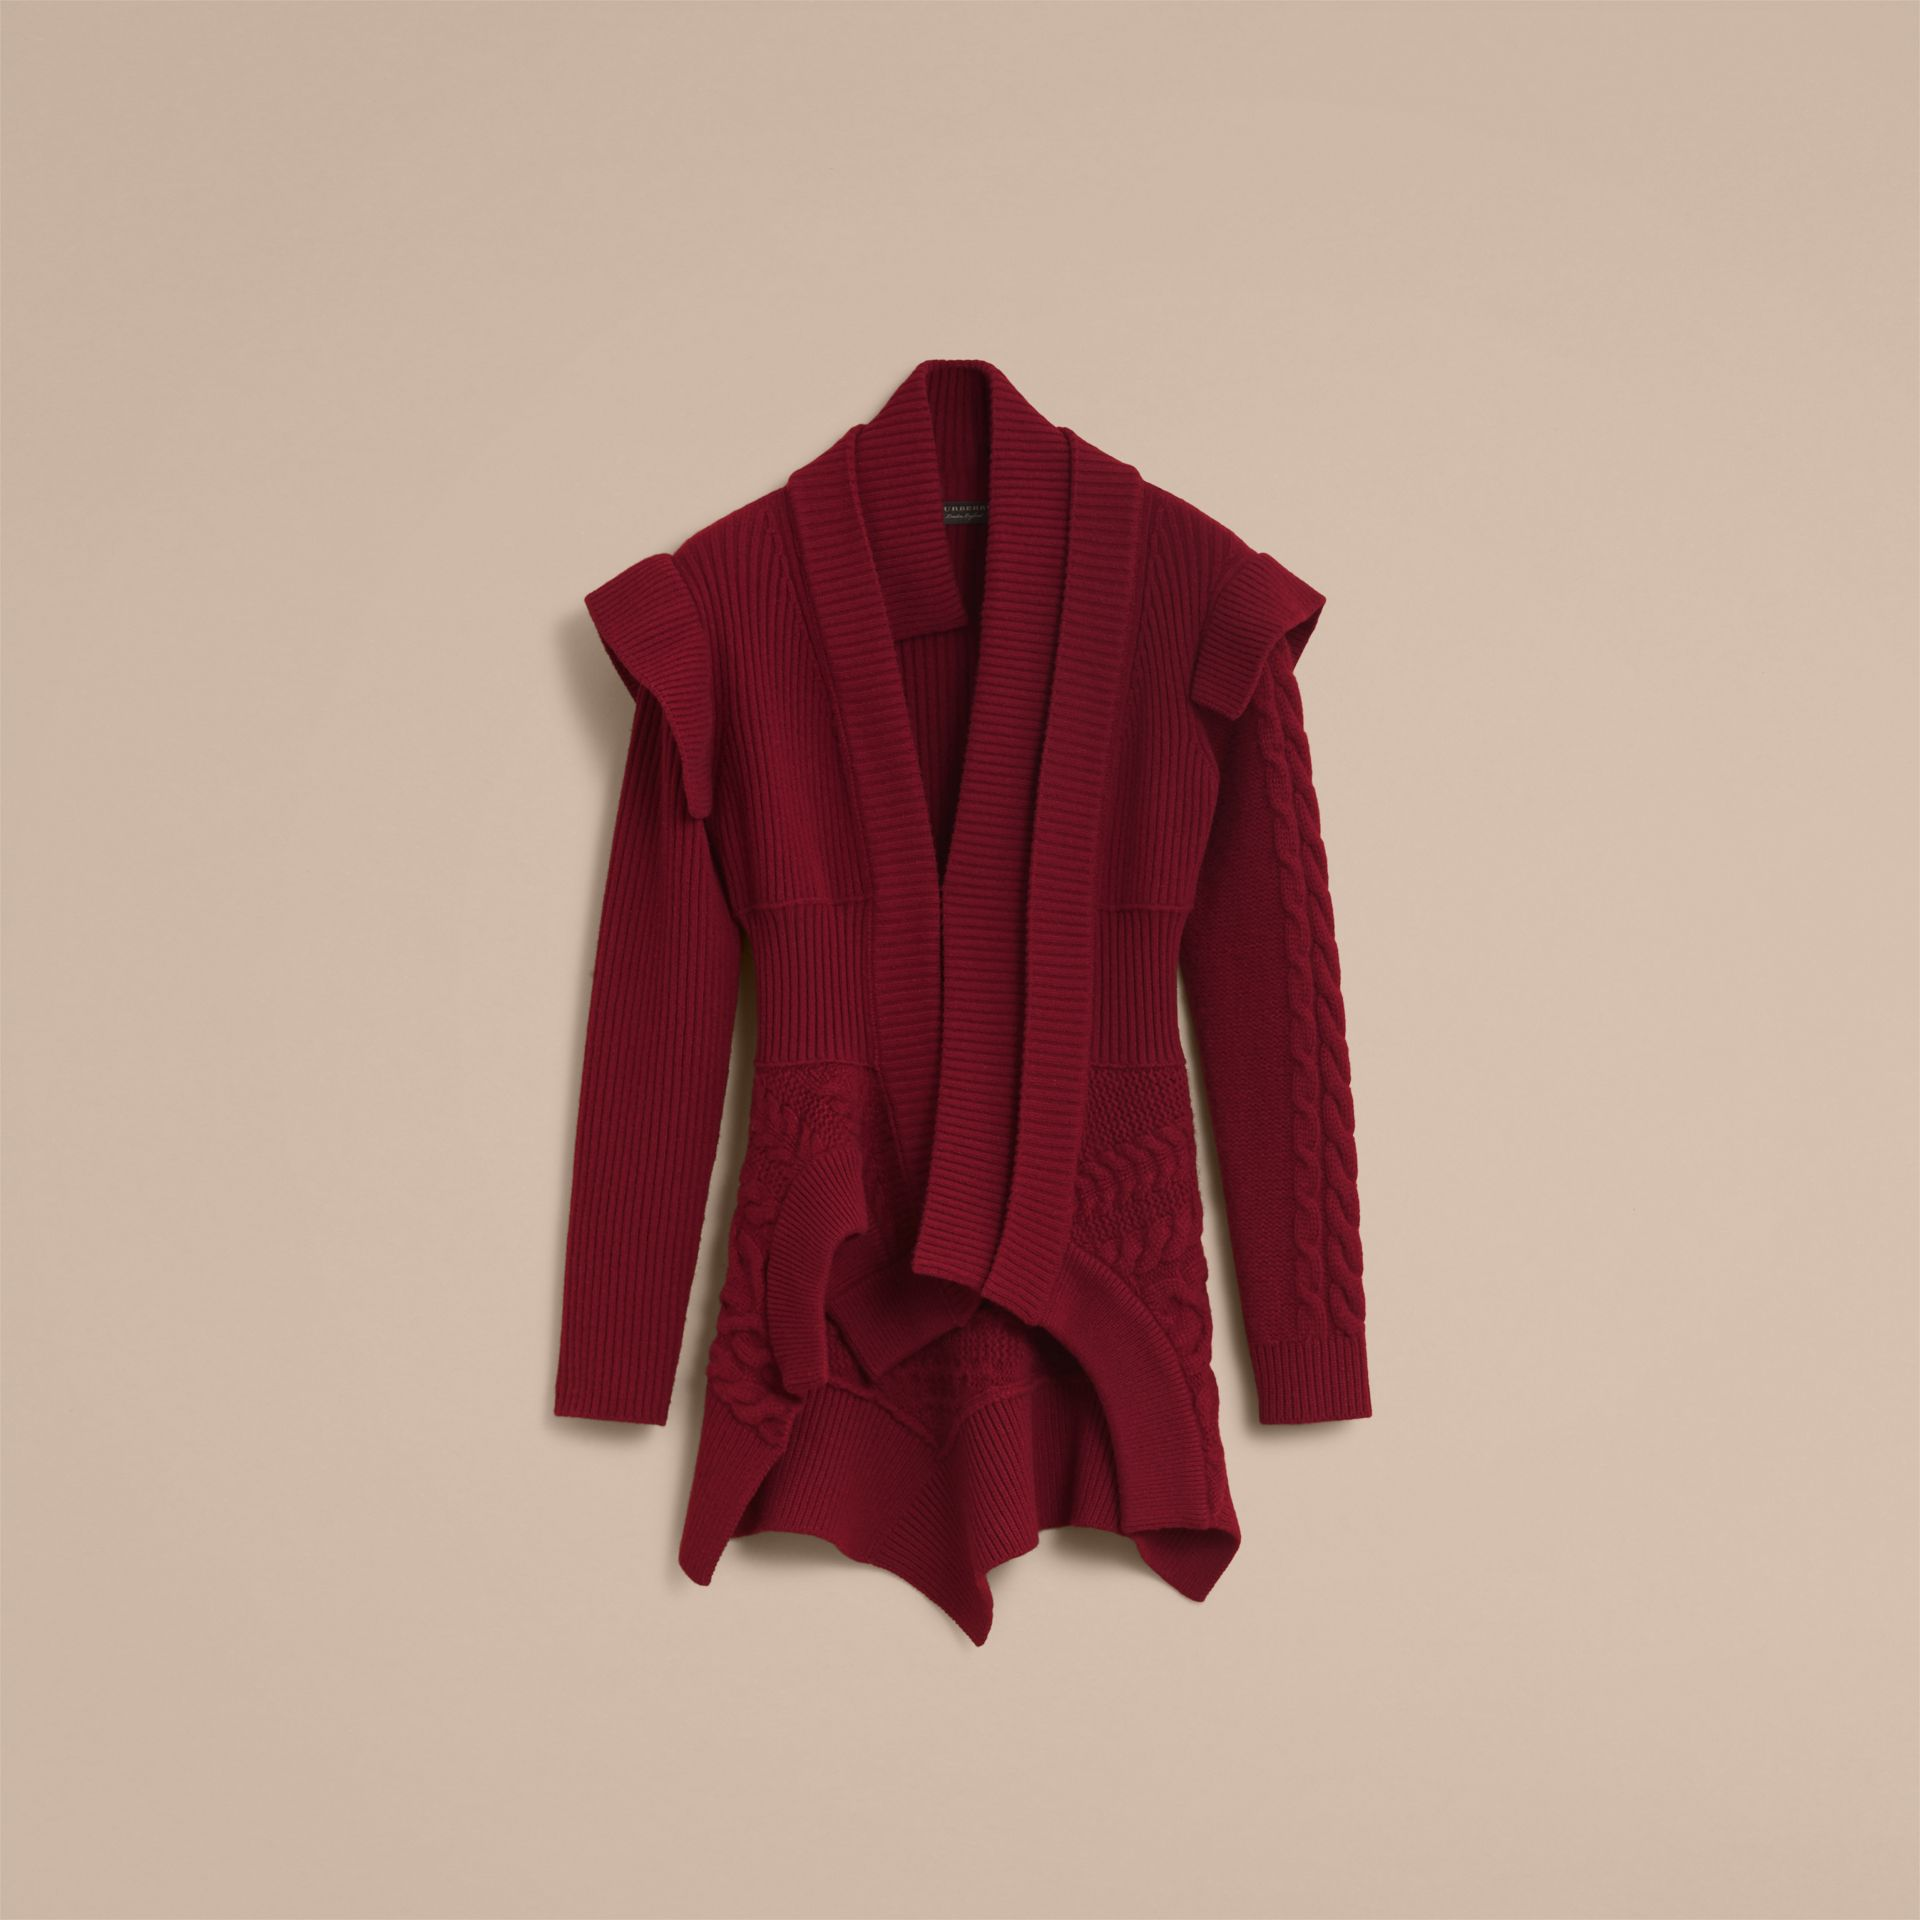 Knitted Wool Cashmere Military-inspired Jacket in Bordeaux - Women | Burberry Australia - gallery image 4